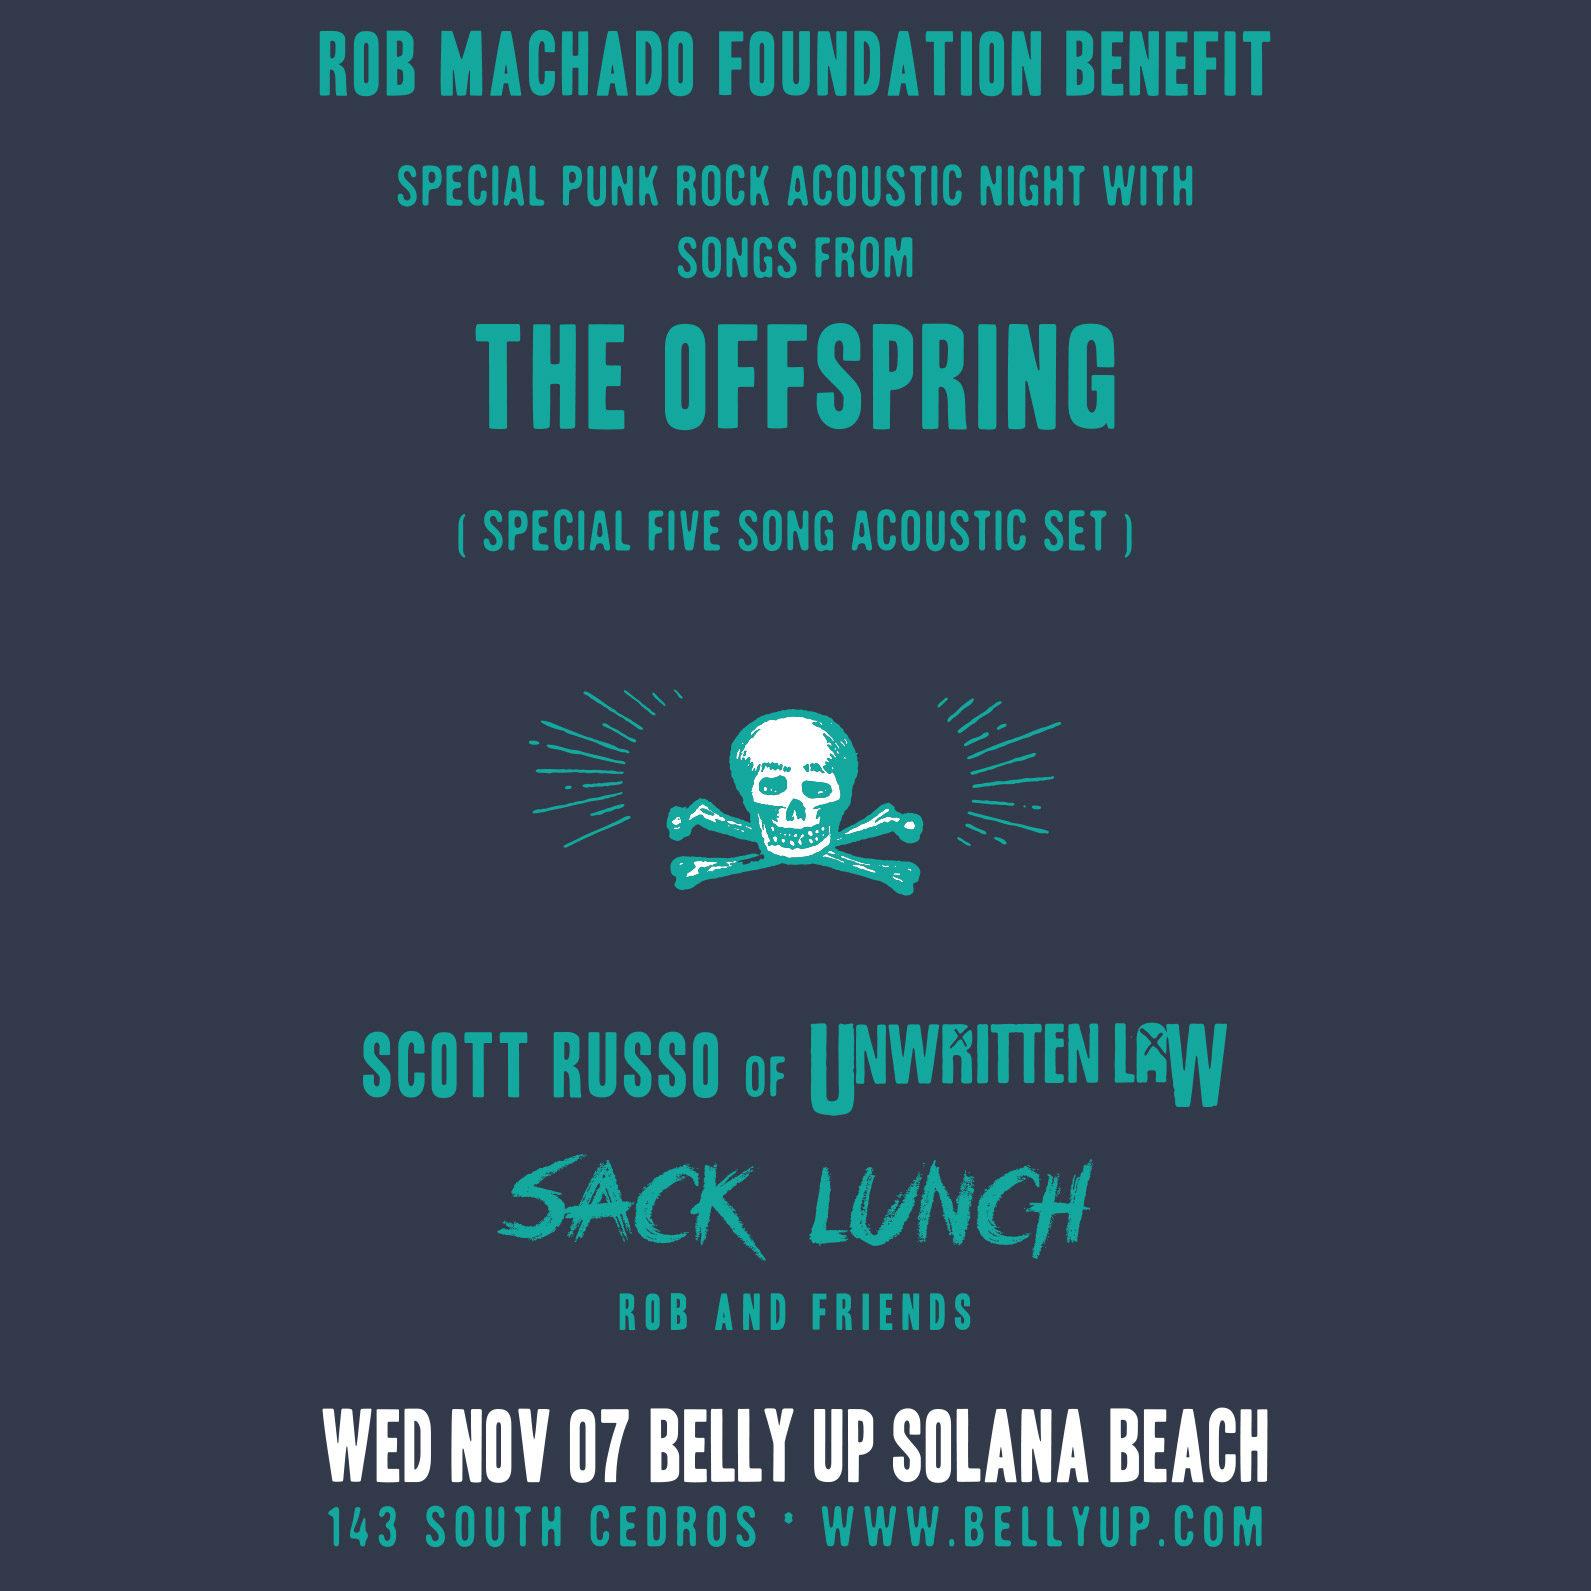 Rob Machado Foundation Benefit